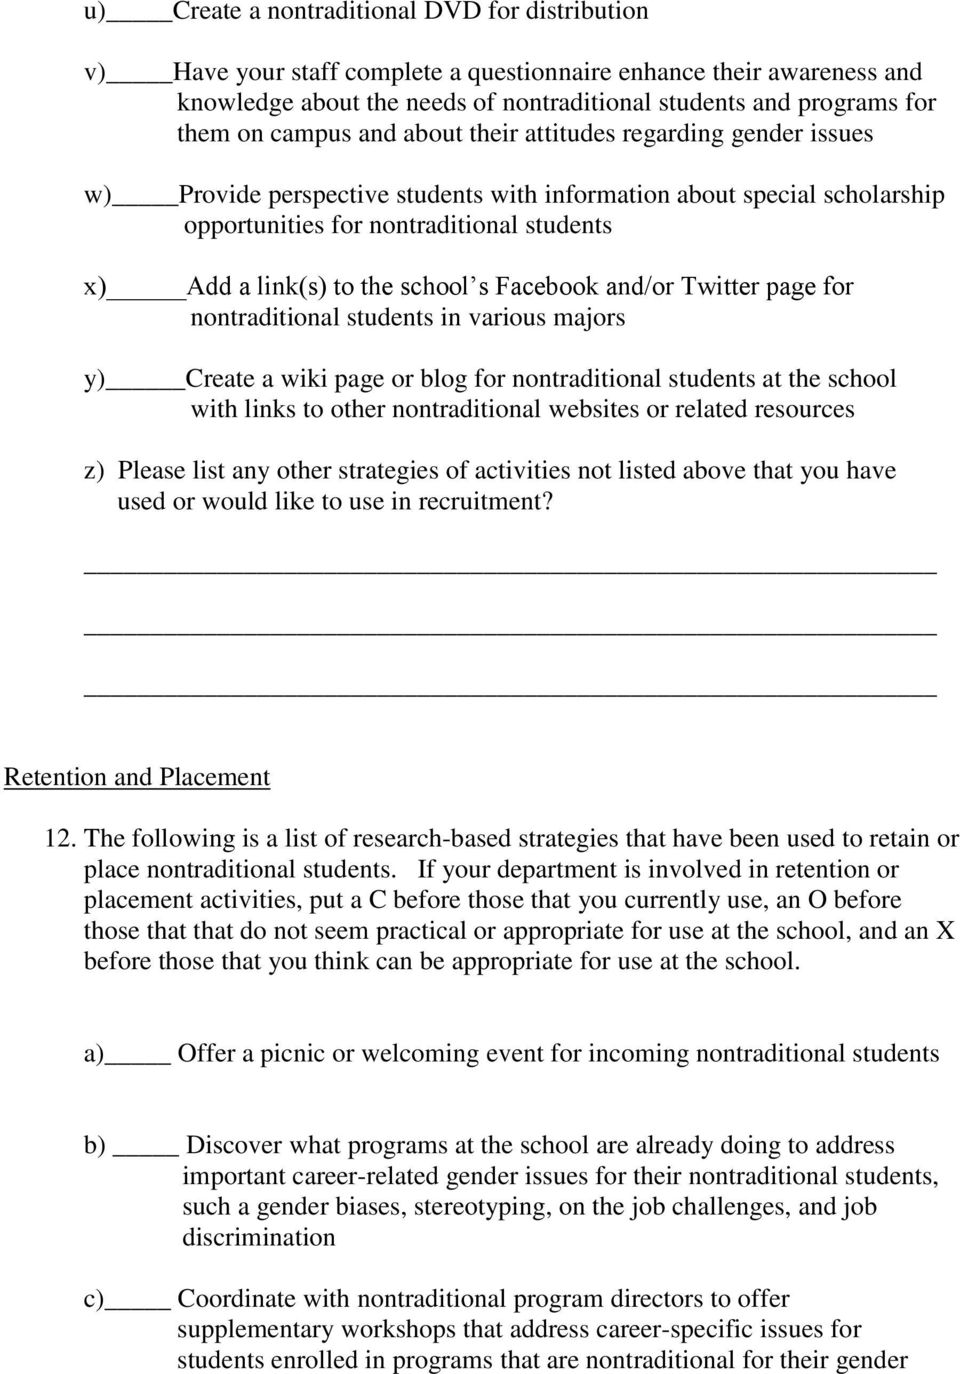 school s Facebook and/or Twitter page for nontraditional students in various majors y) Create a wiki page or blog for nontraditional students at the school with links to other nontraditional websites